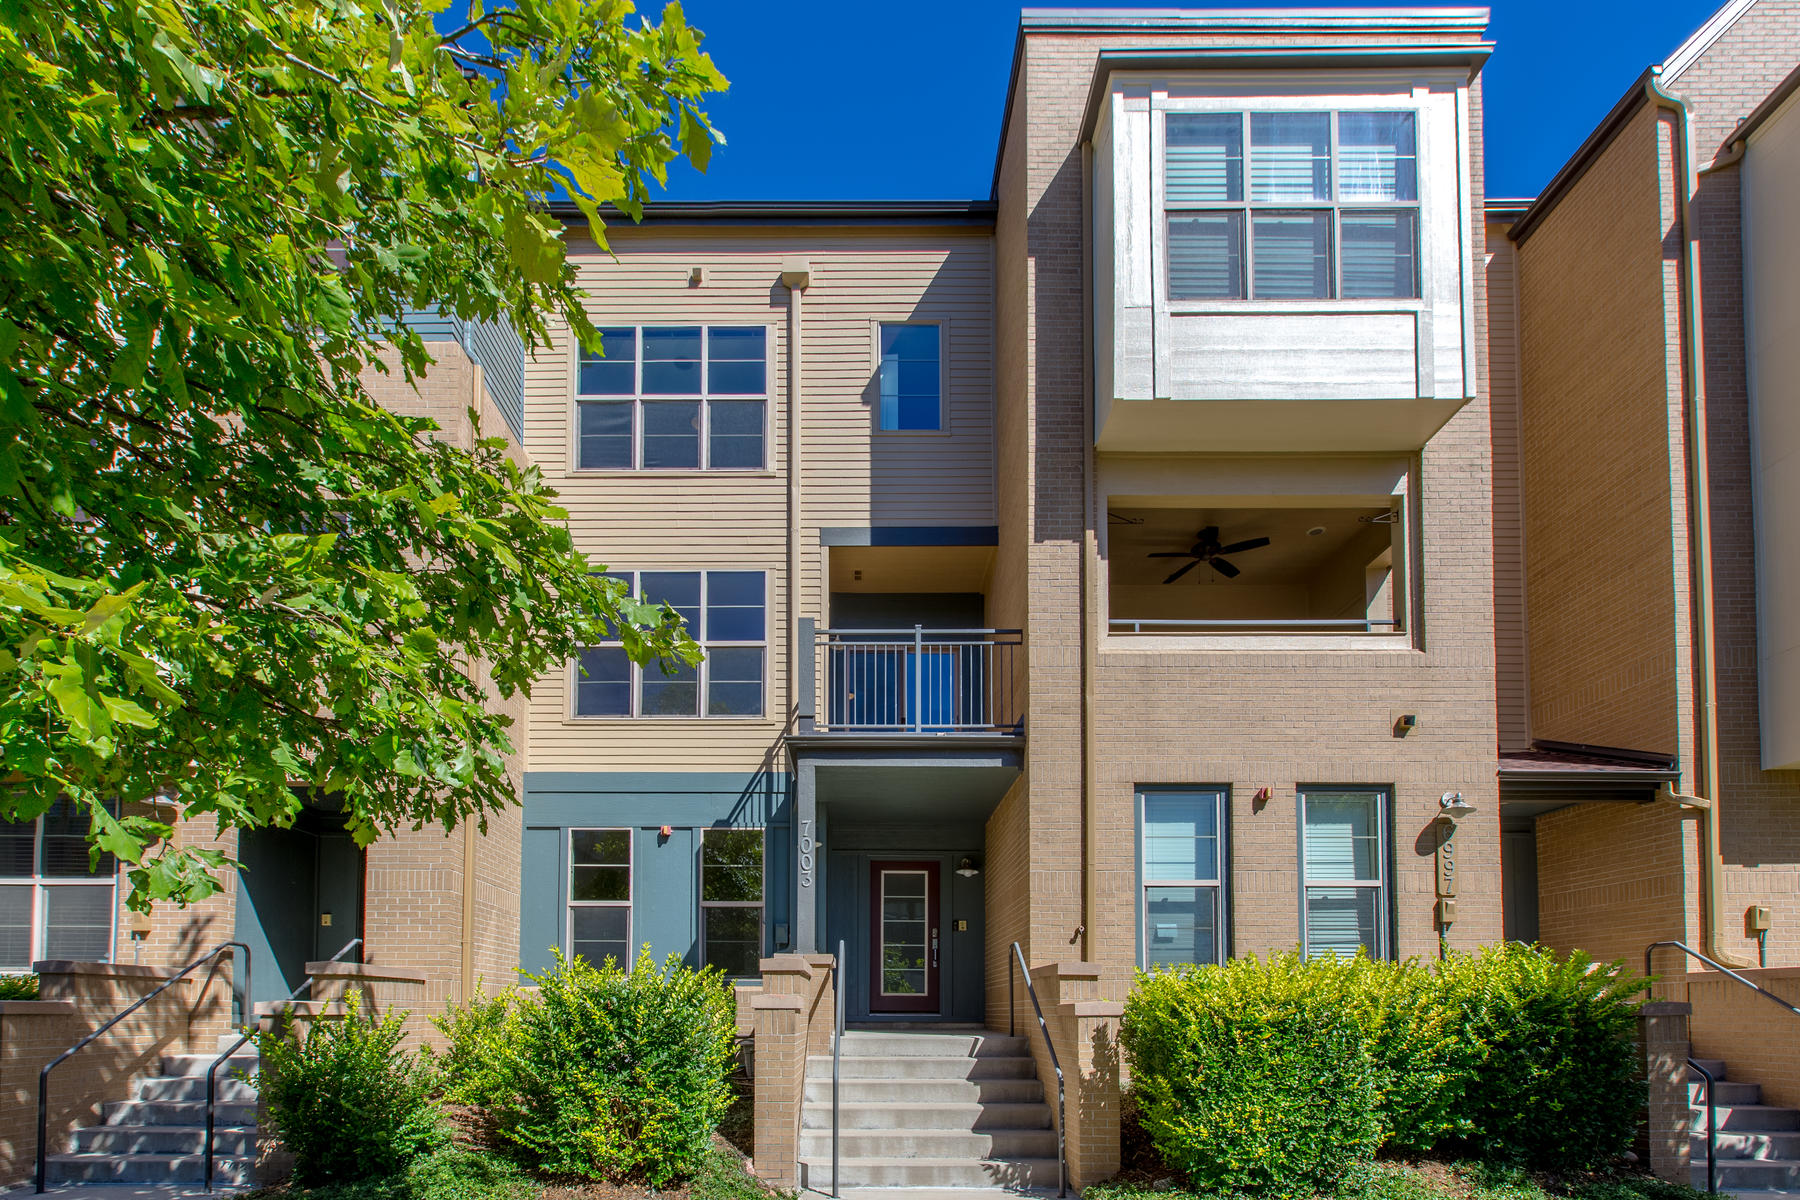 Townhouse for Active at 4 Story Townhome within Easy Walking Distance to Amenities 7003 West Virginia Avenue Lakewood, Colorado 80226 United States